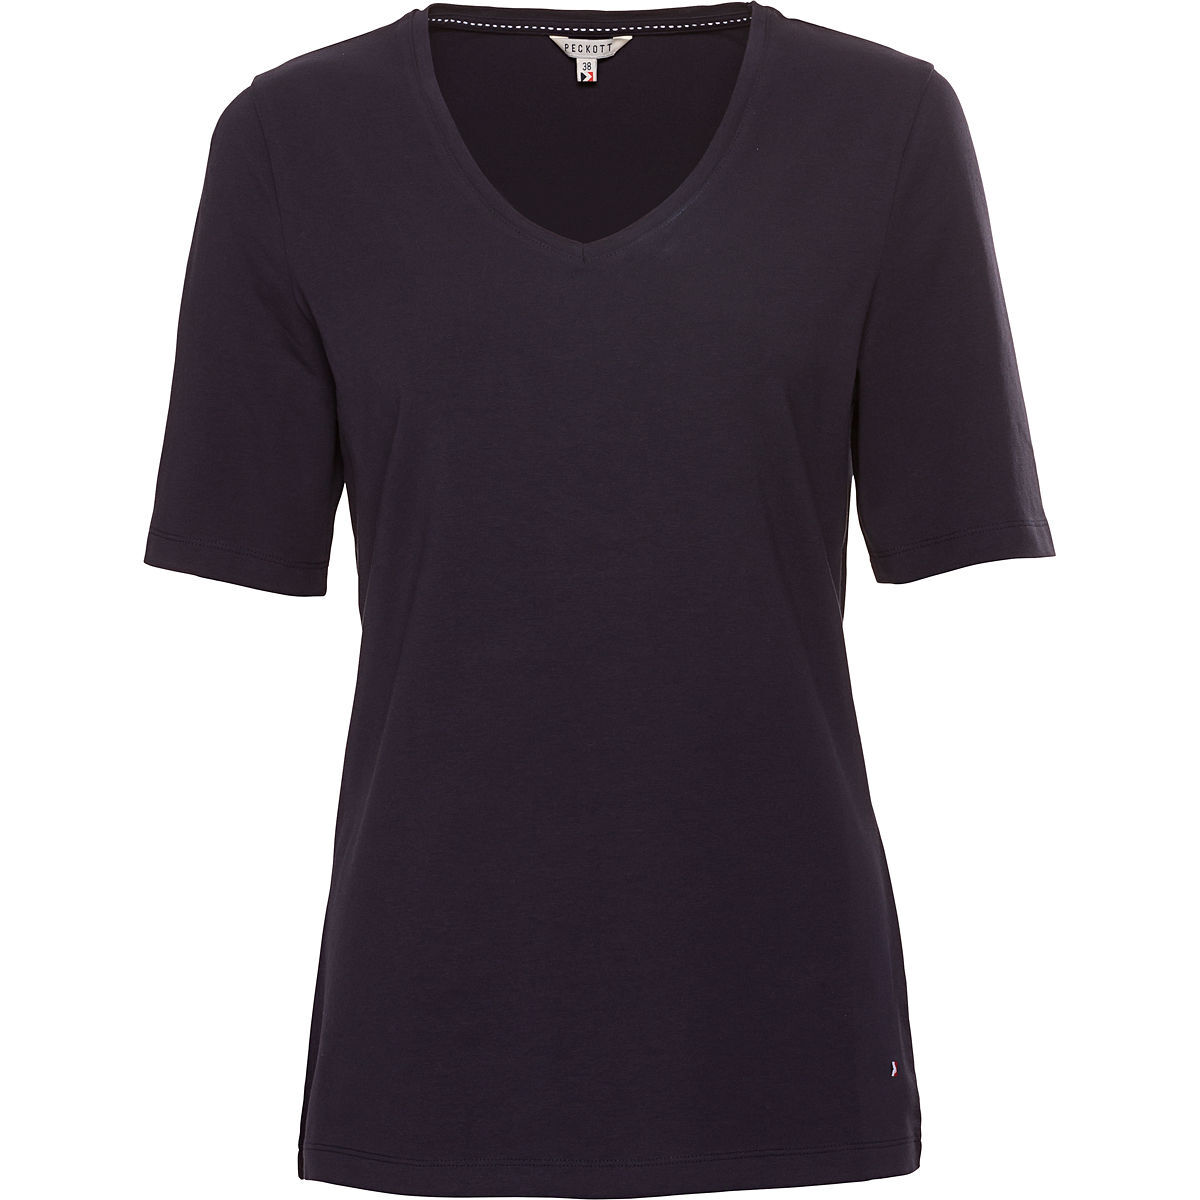 peckott damen t shirt v ausschnitt navy 40 karstadt. Black Bedroom Furniture Sets. Home Design Ideas